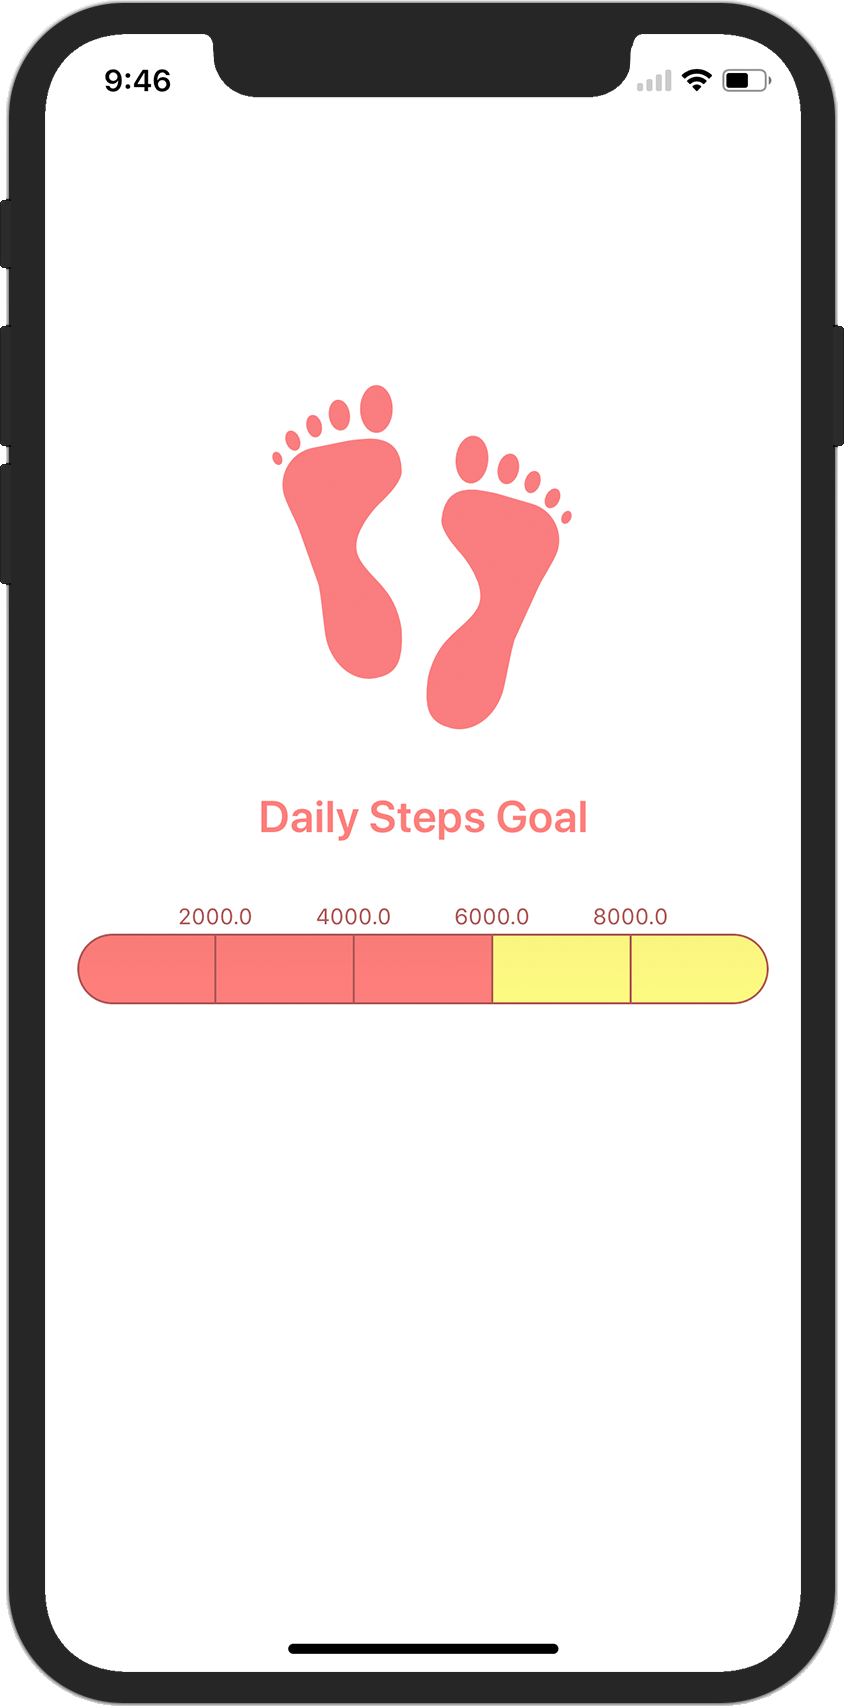 ProgressMeter - Display the progress on a meter with